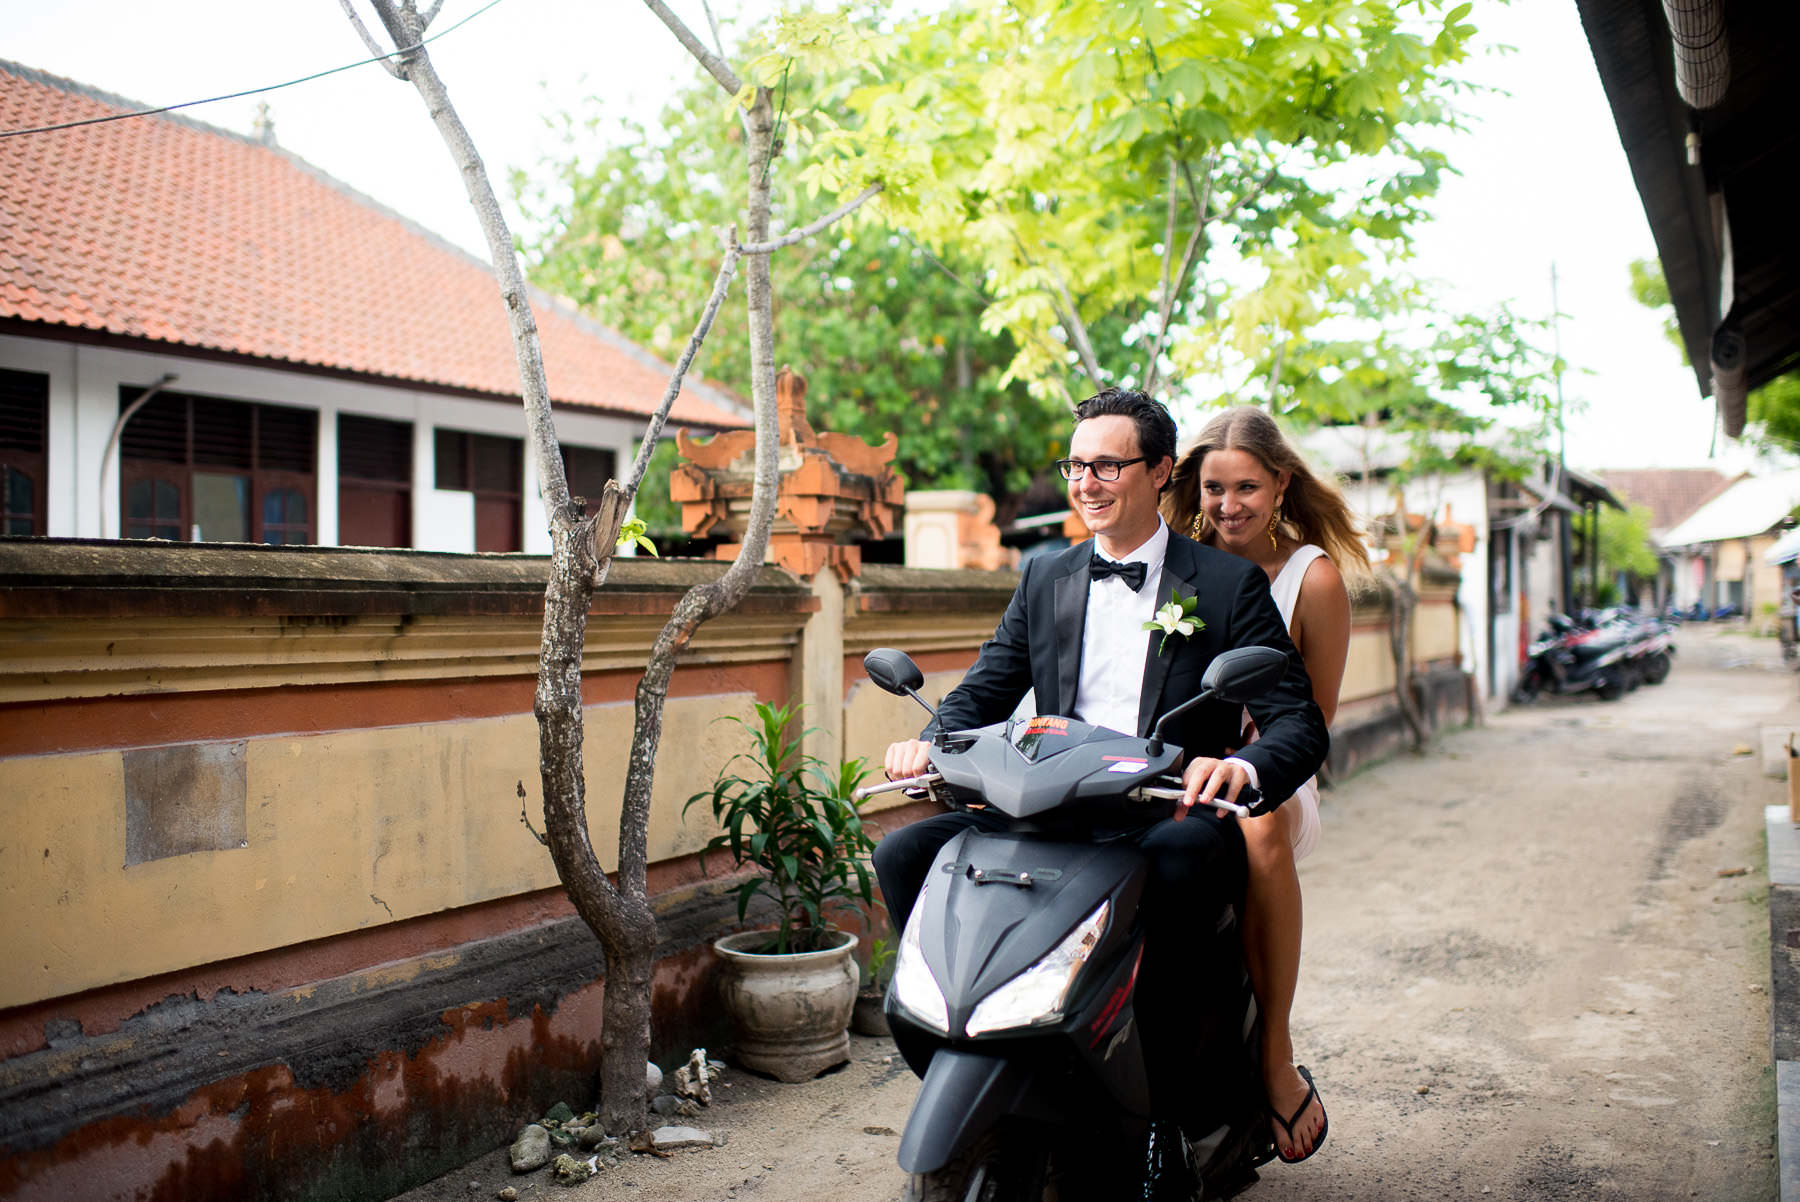 bride and groom on scooter at Bali destination wedding